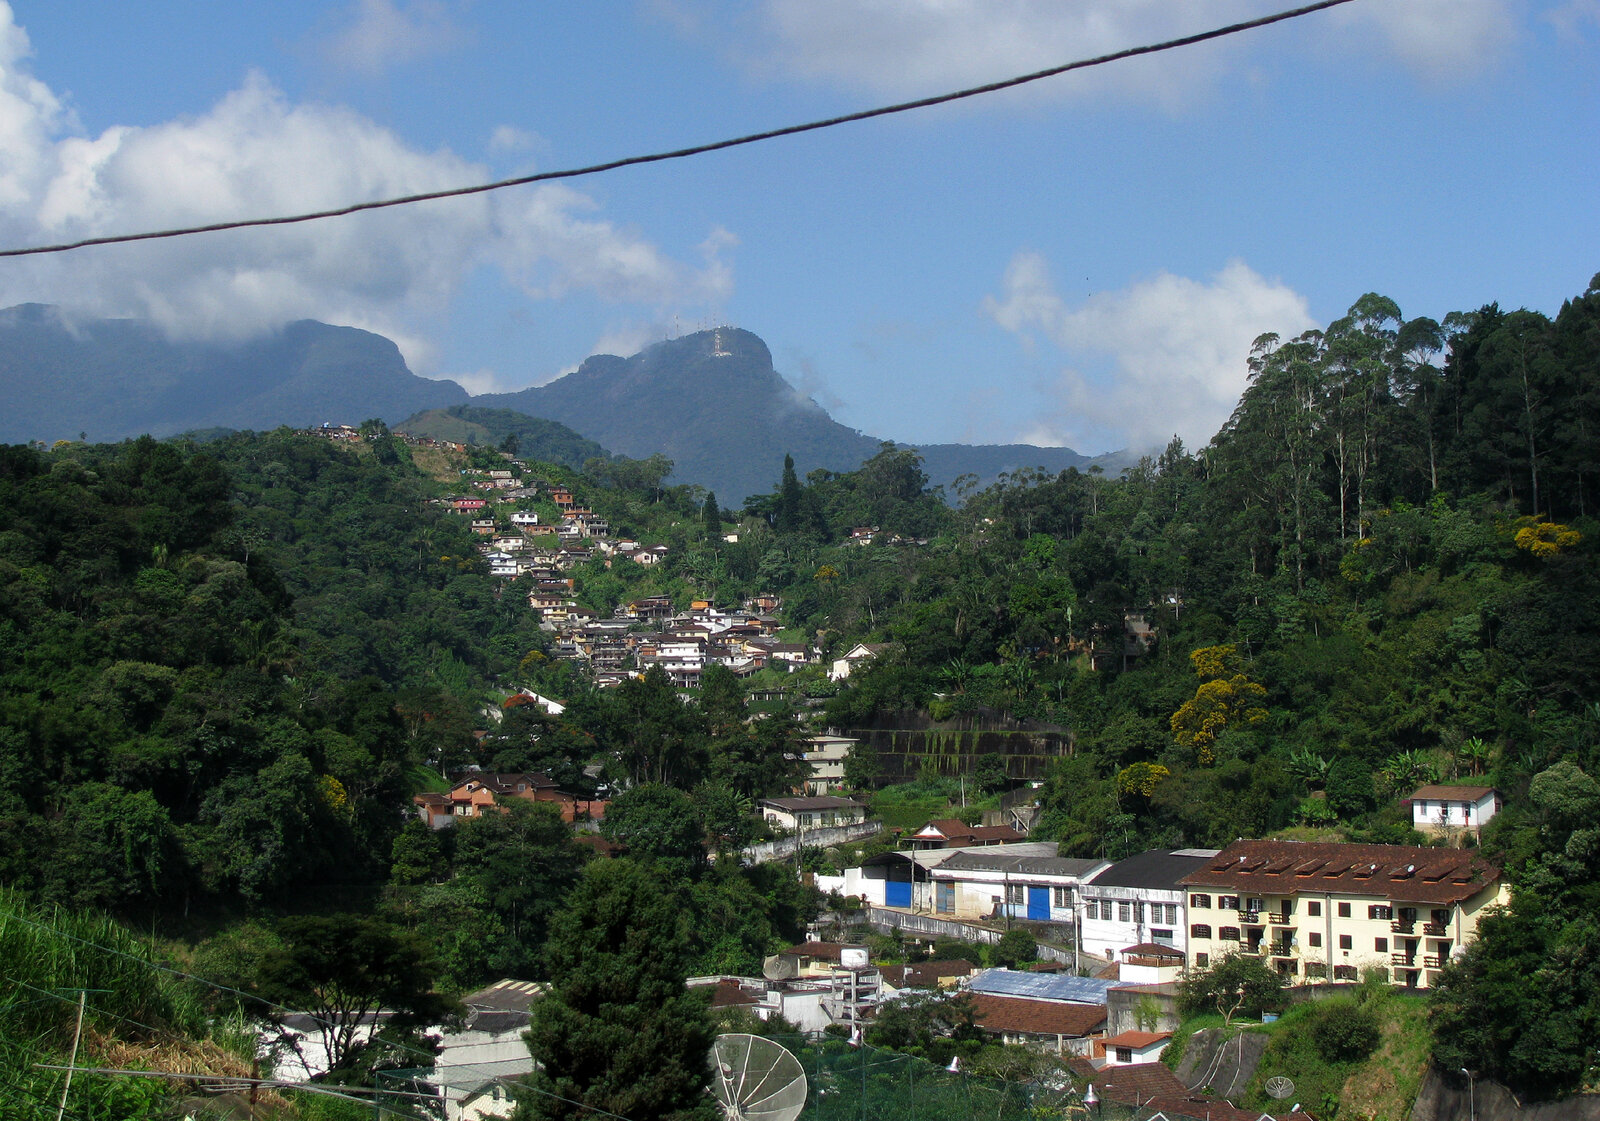 Almost everyone who owns a home in the city of Petropolis — where the Brazilian royal family once had a summer palace — still pays tax to the descendants of the former rulers.